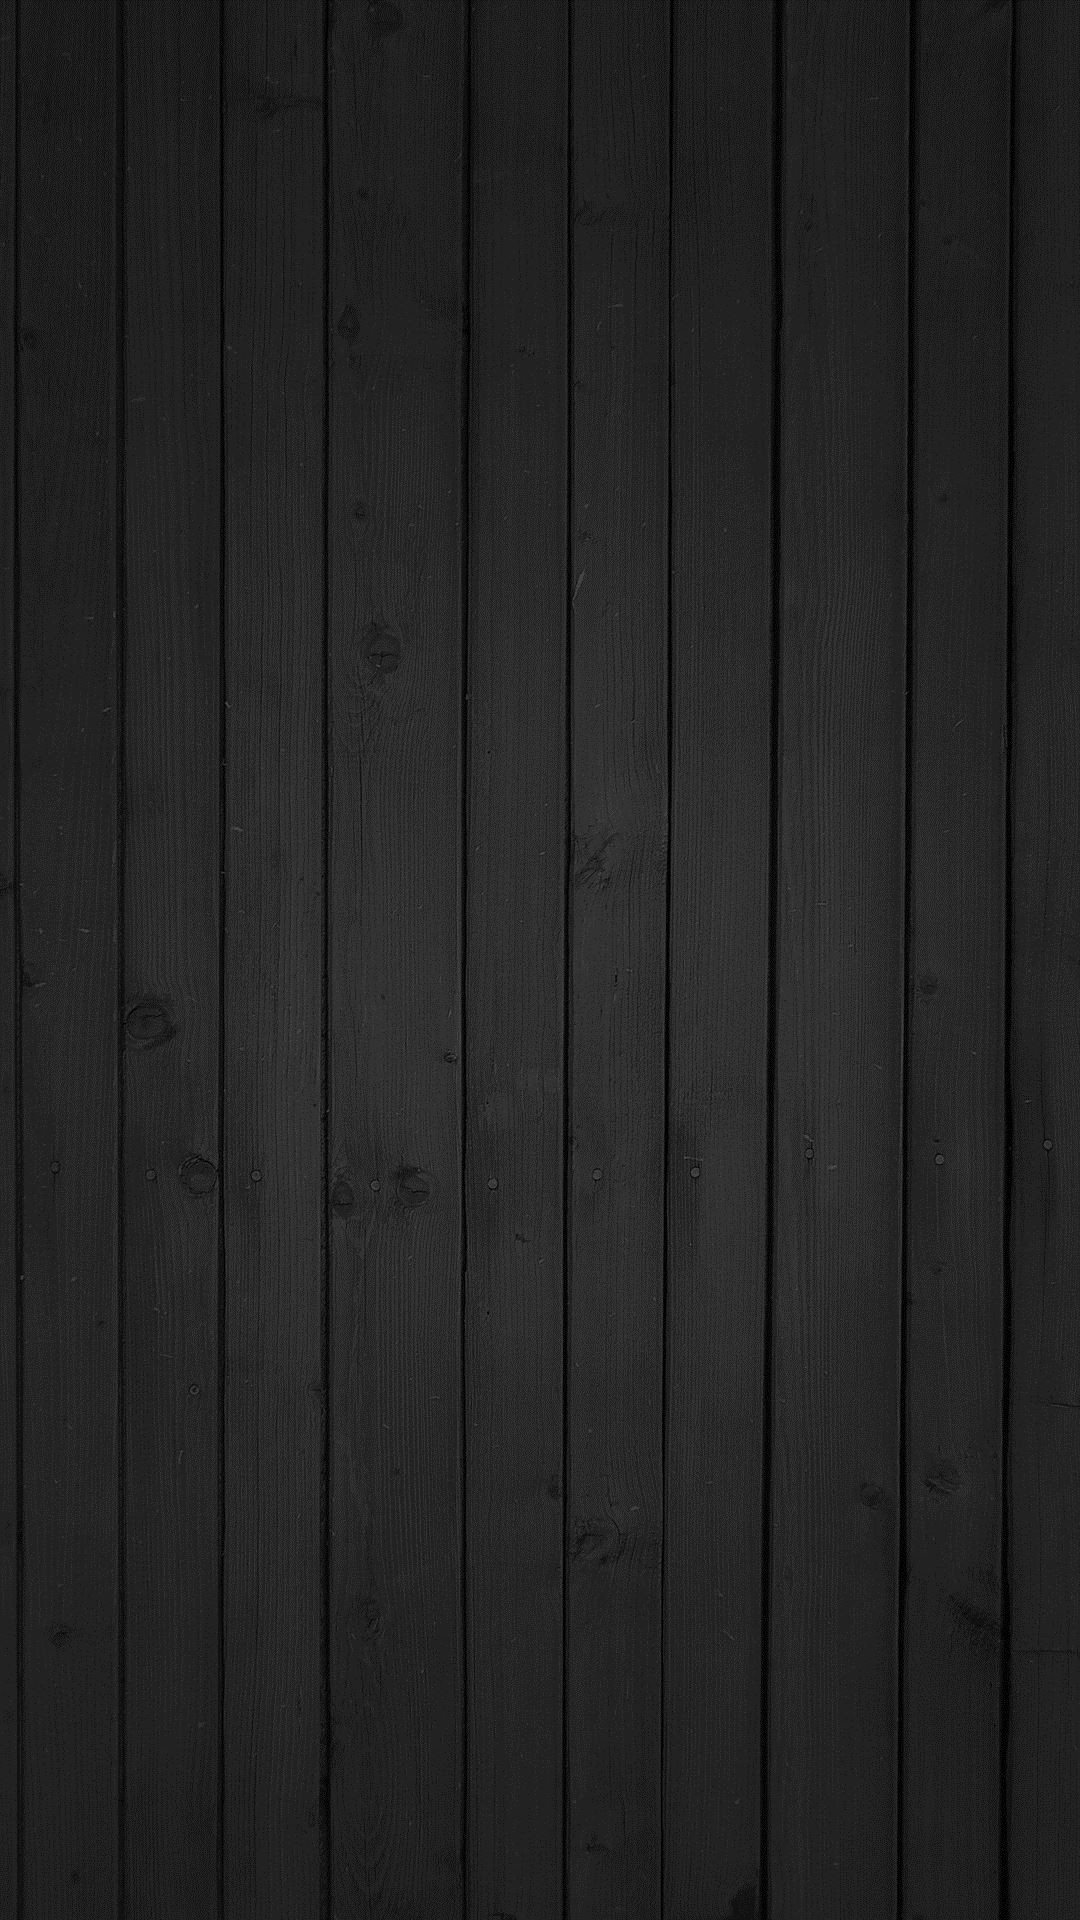 1080x1920 Download Vertical Black Wood Beams iPhone 6 Plus Wallpaper from the   resolutions. This wallpaper comes from Simple directory and we  focuse it on .